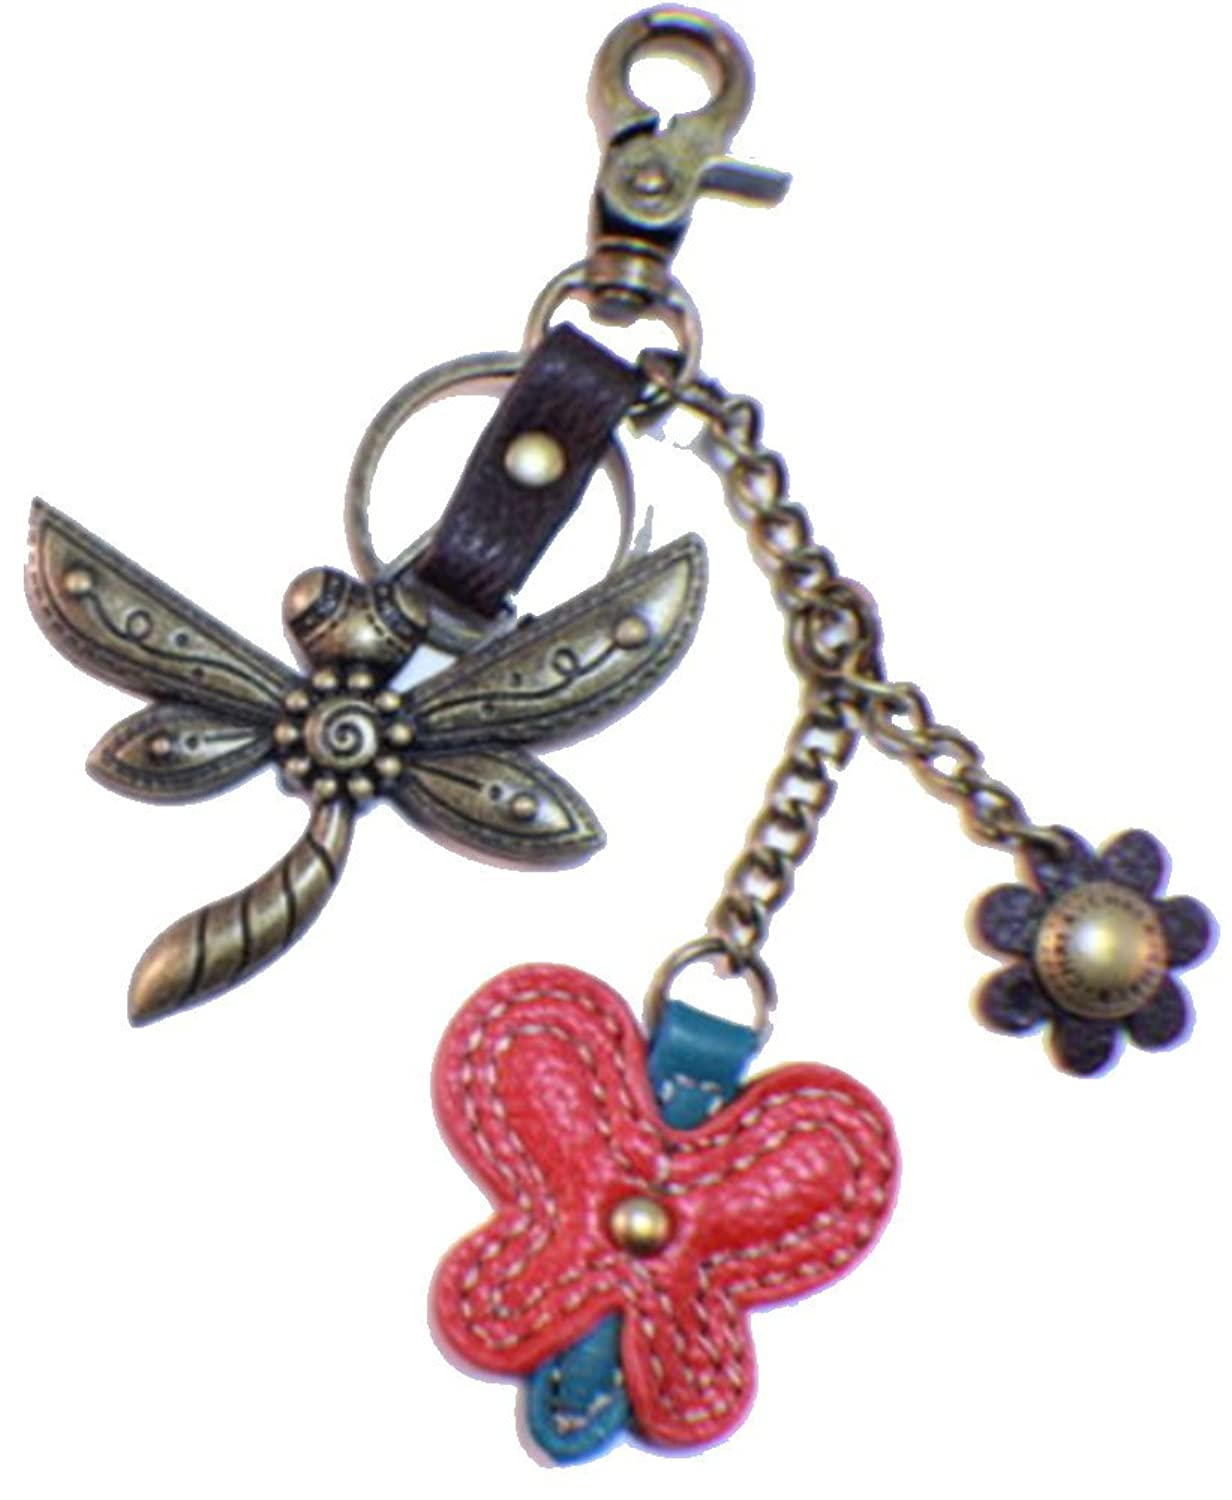 Chala Dragonfly And Butterfly Charming Key Chain Purse Bag Fob Charm